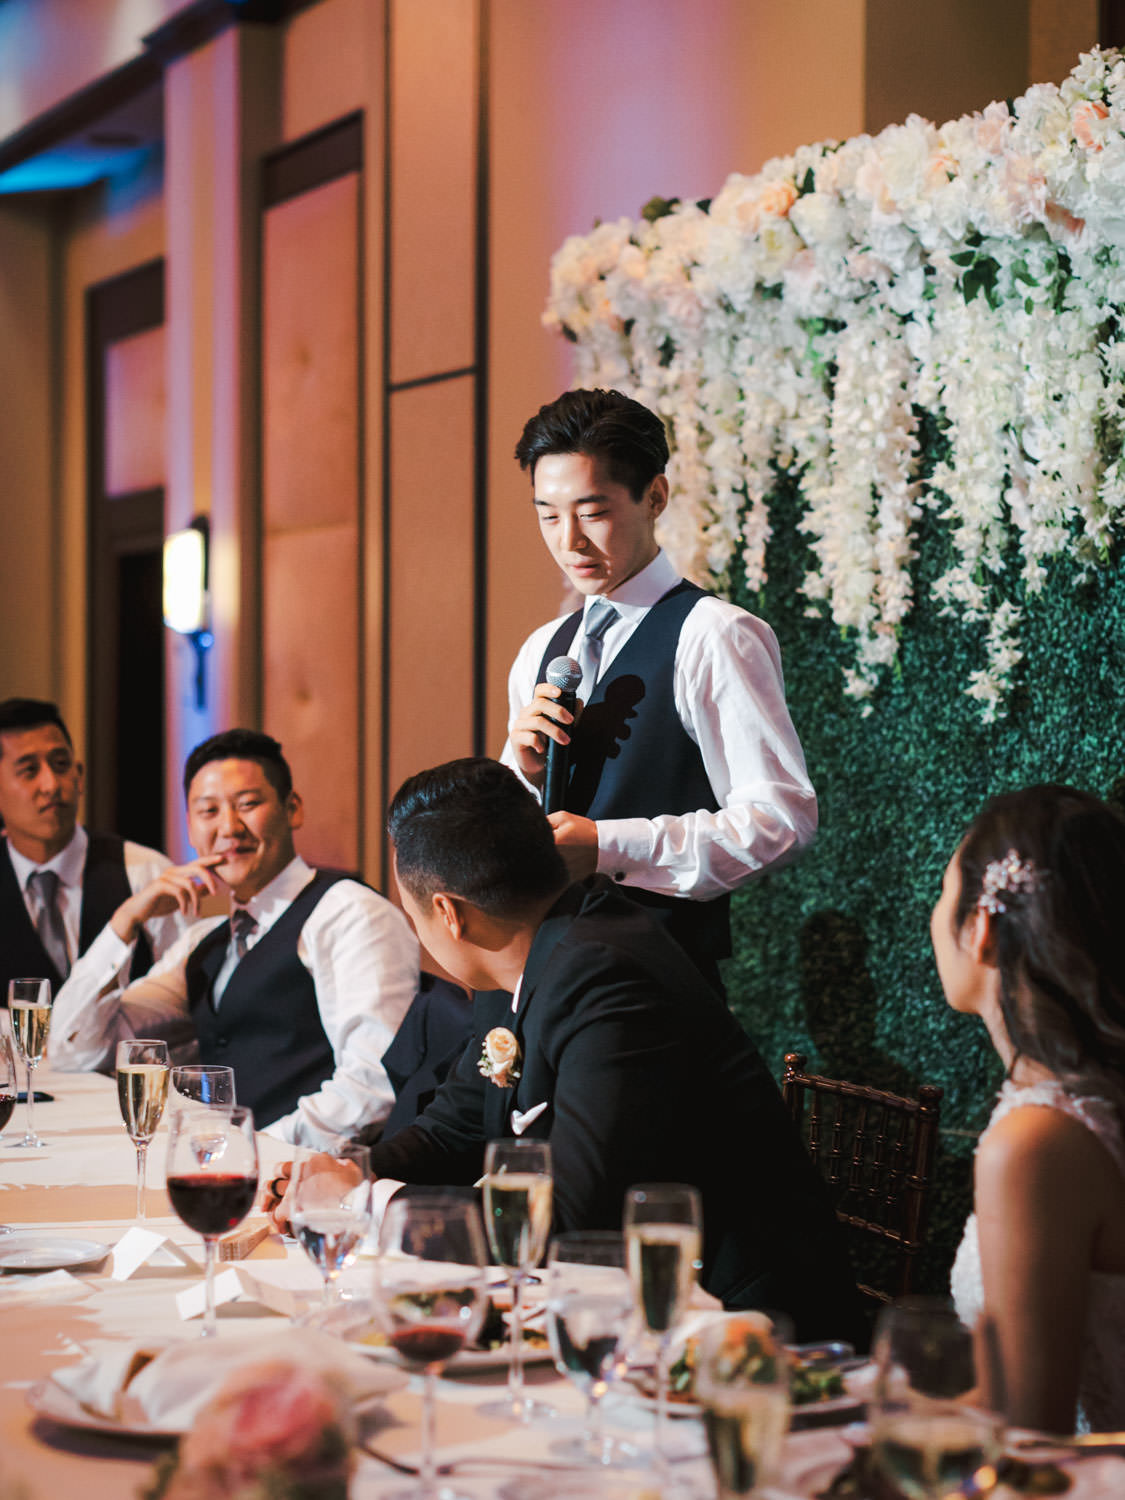 Wedding speech toasts at Rancho Bernardo Inn in the Aragon Ballroom. photo by Cavin Elizabeth Photography